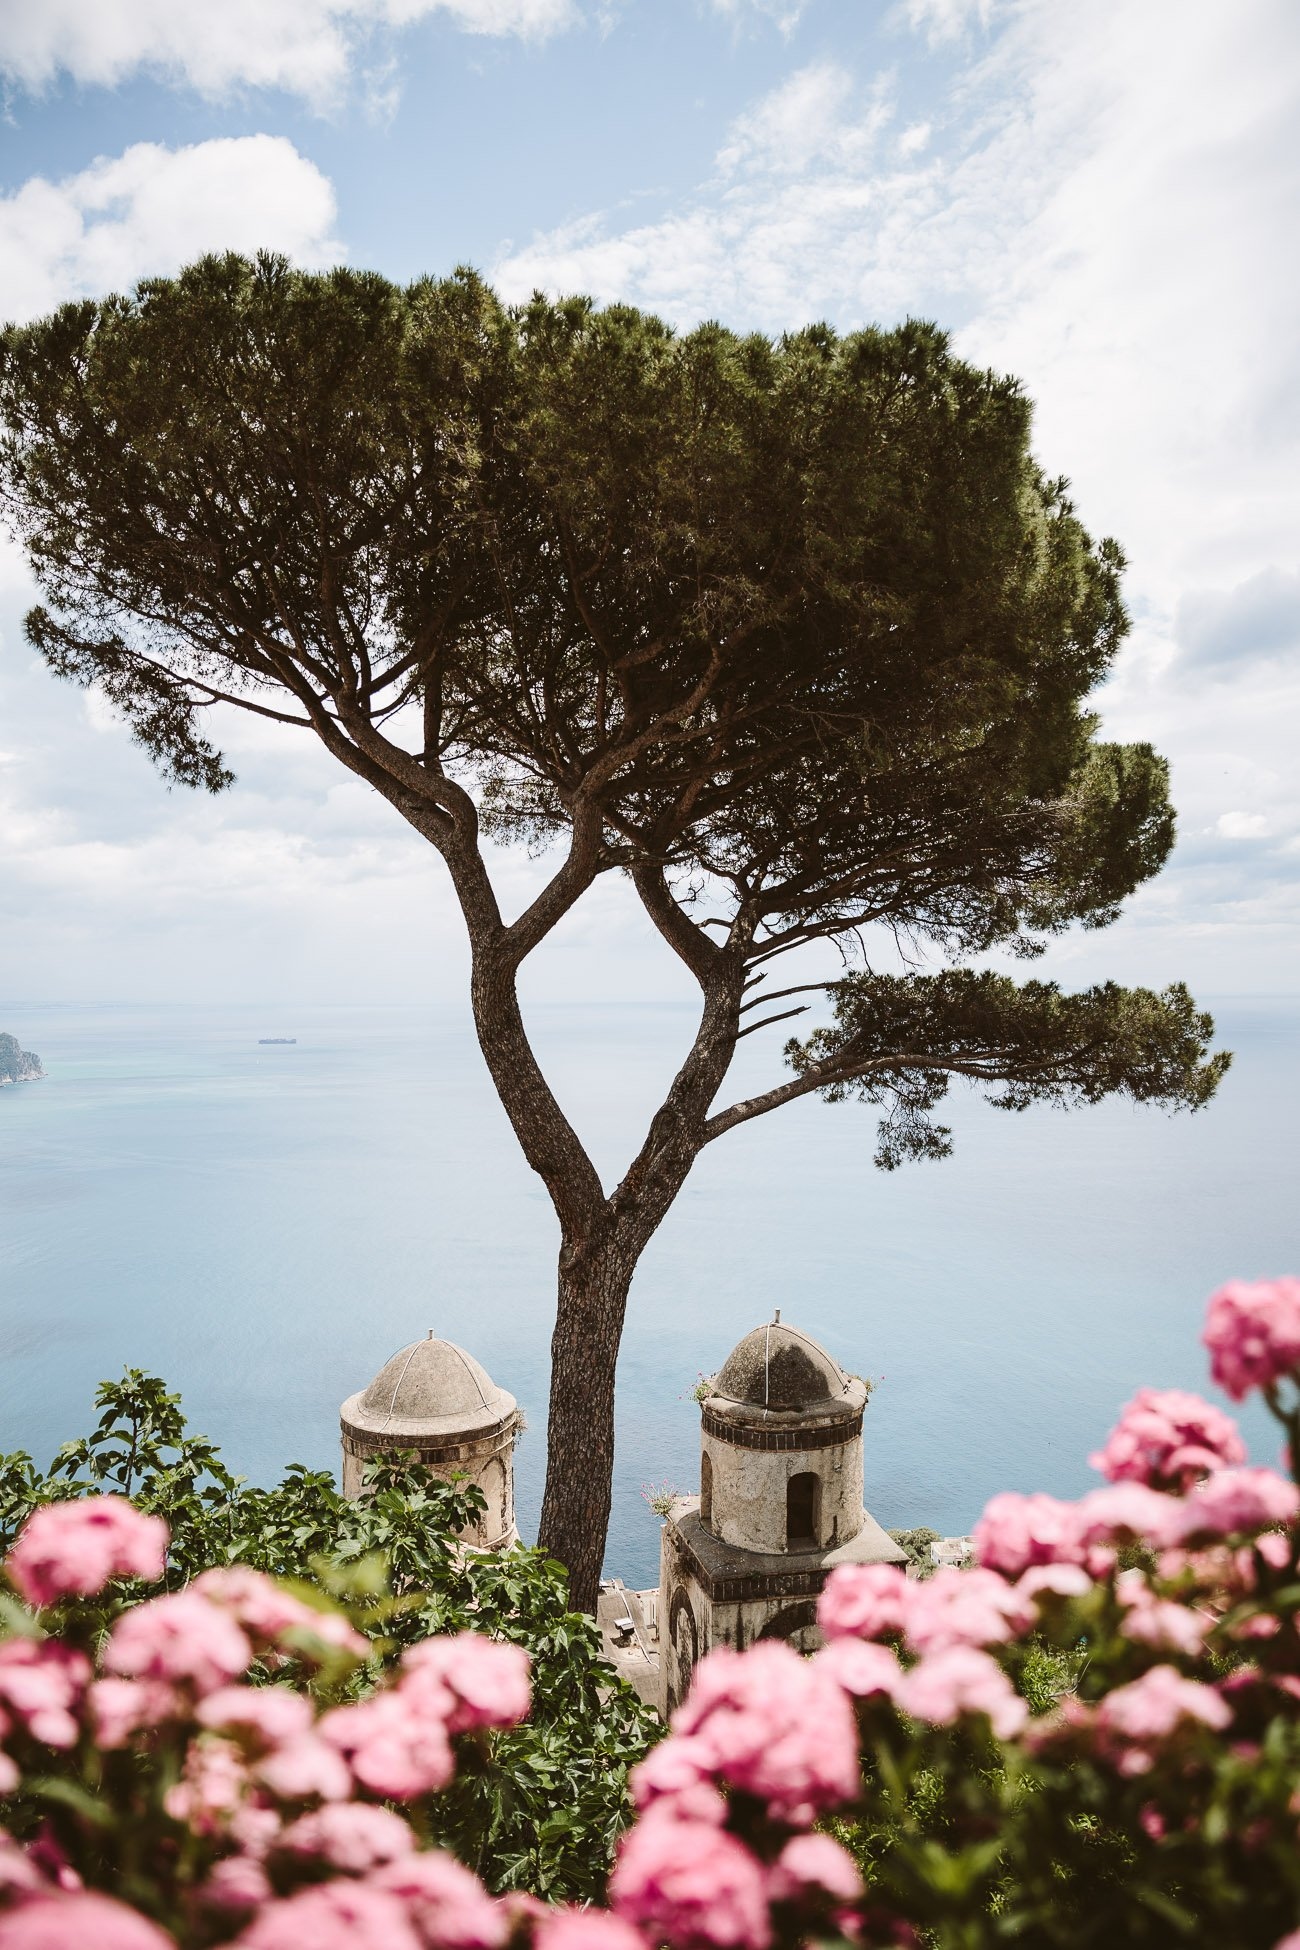 The view from Villa Rufolo in Ravello Amalfi Coast